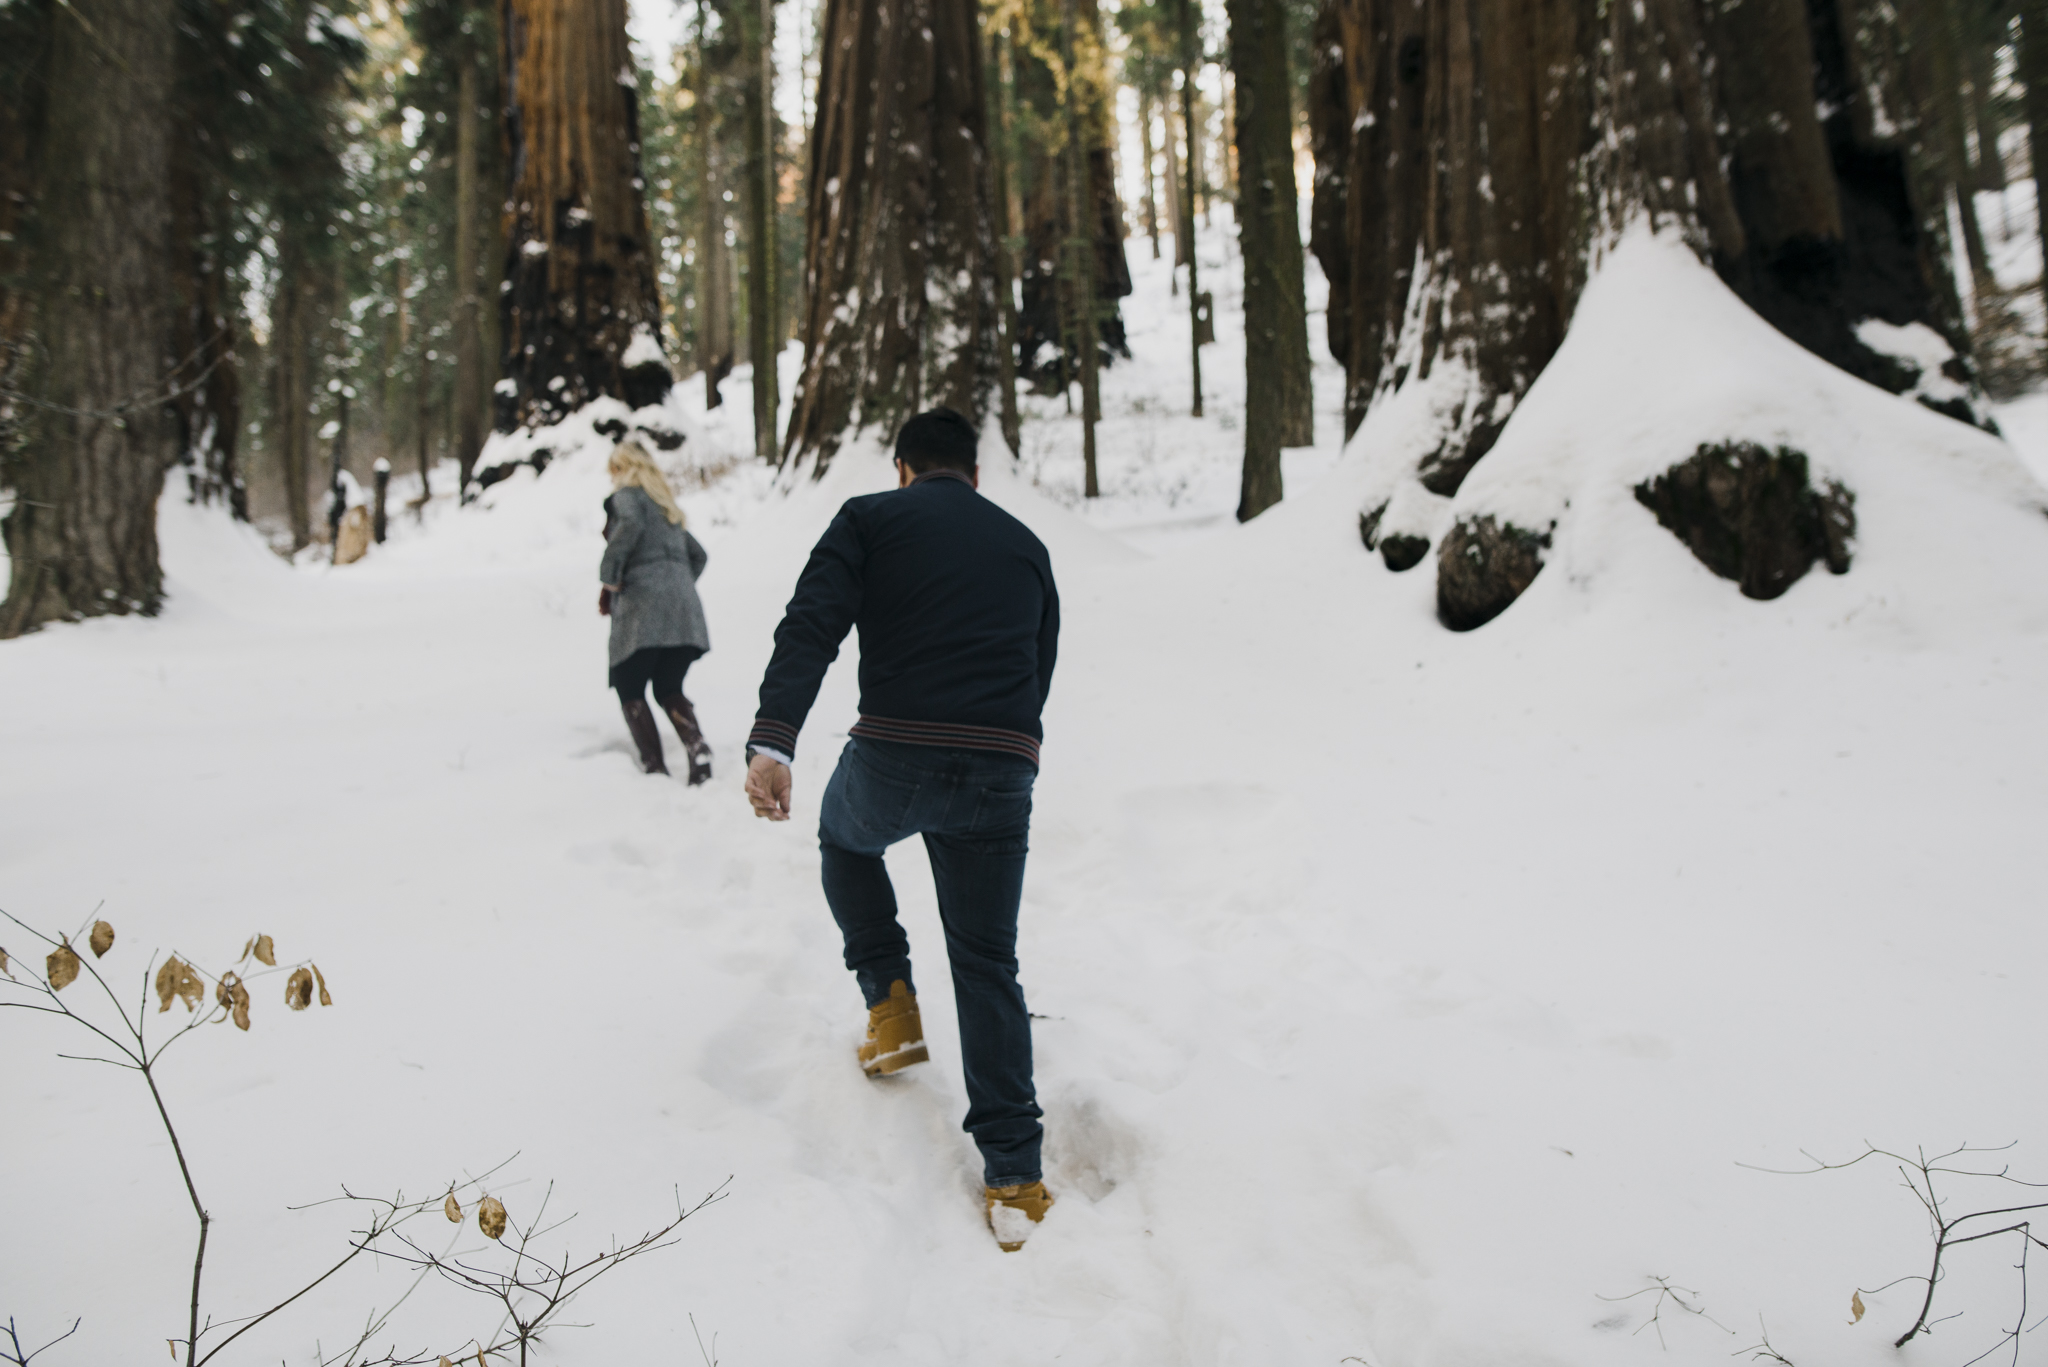 ©Isaiah-&-Taylor-Photography---George-&-Alyssa-Engagement---Sequoia-National-Park,-California-1.jpg